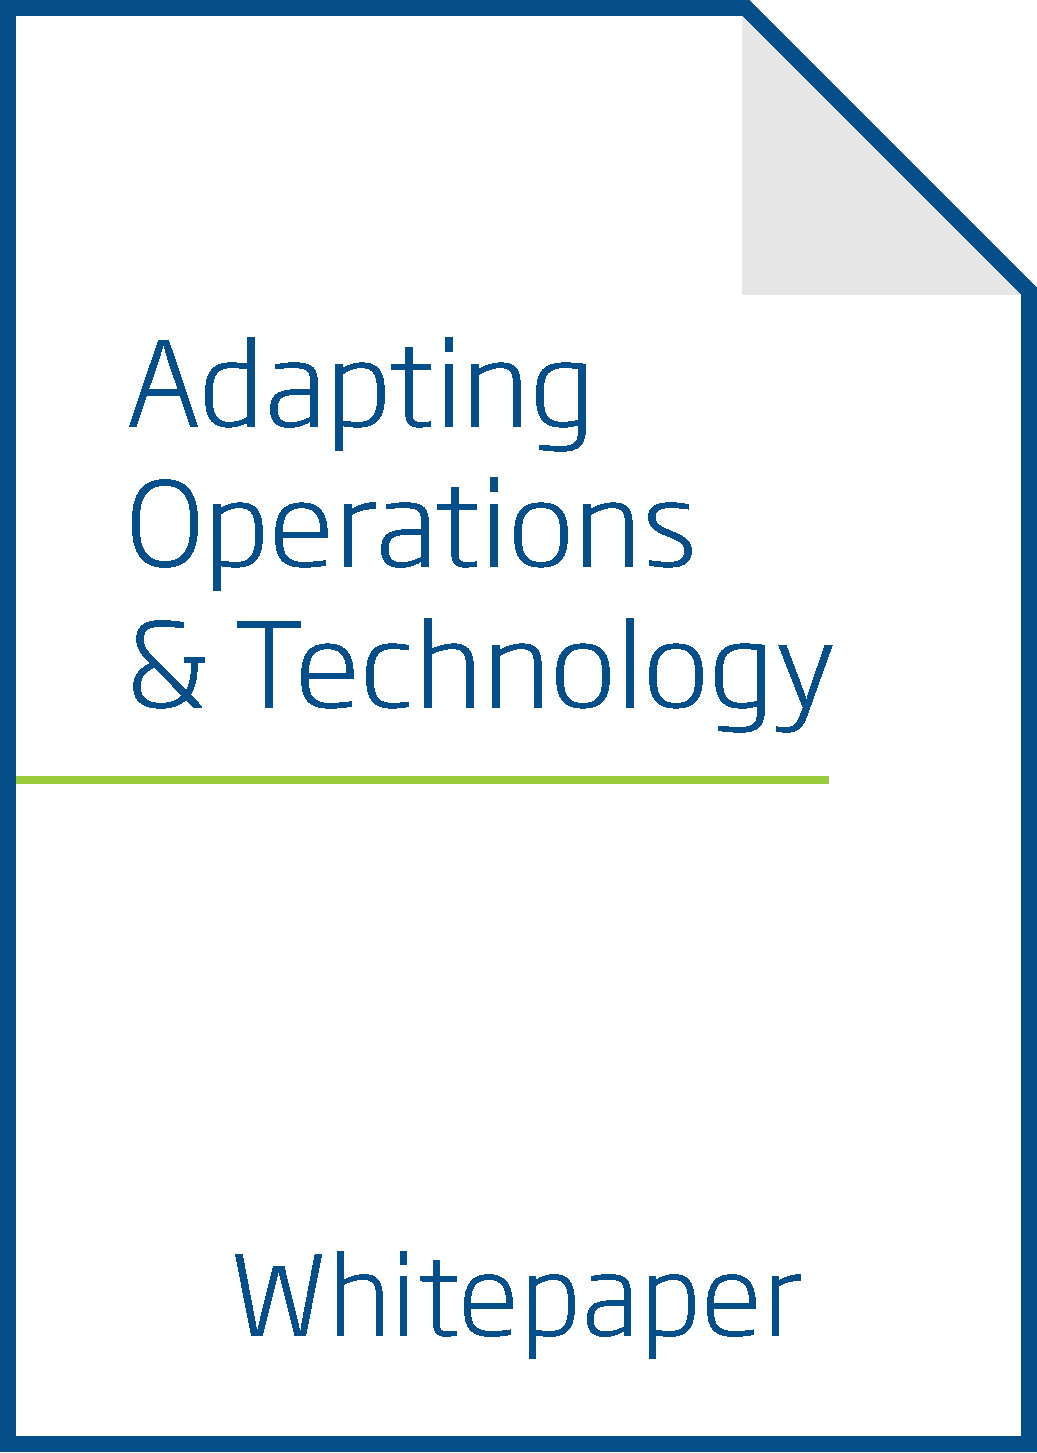 whitepaper-adapting-operations.png